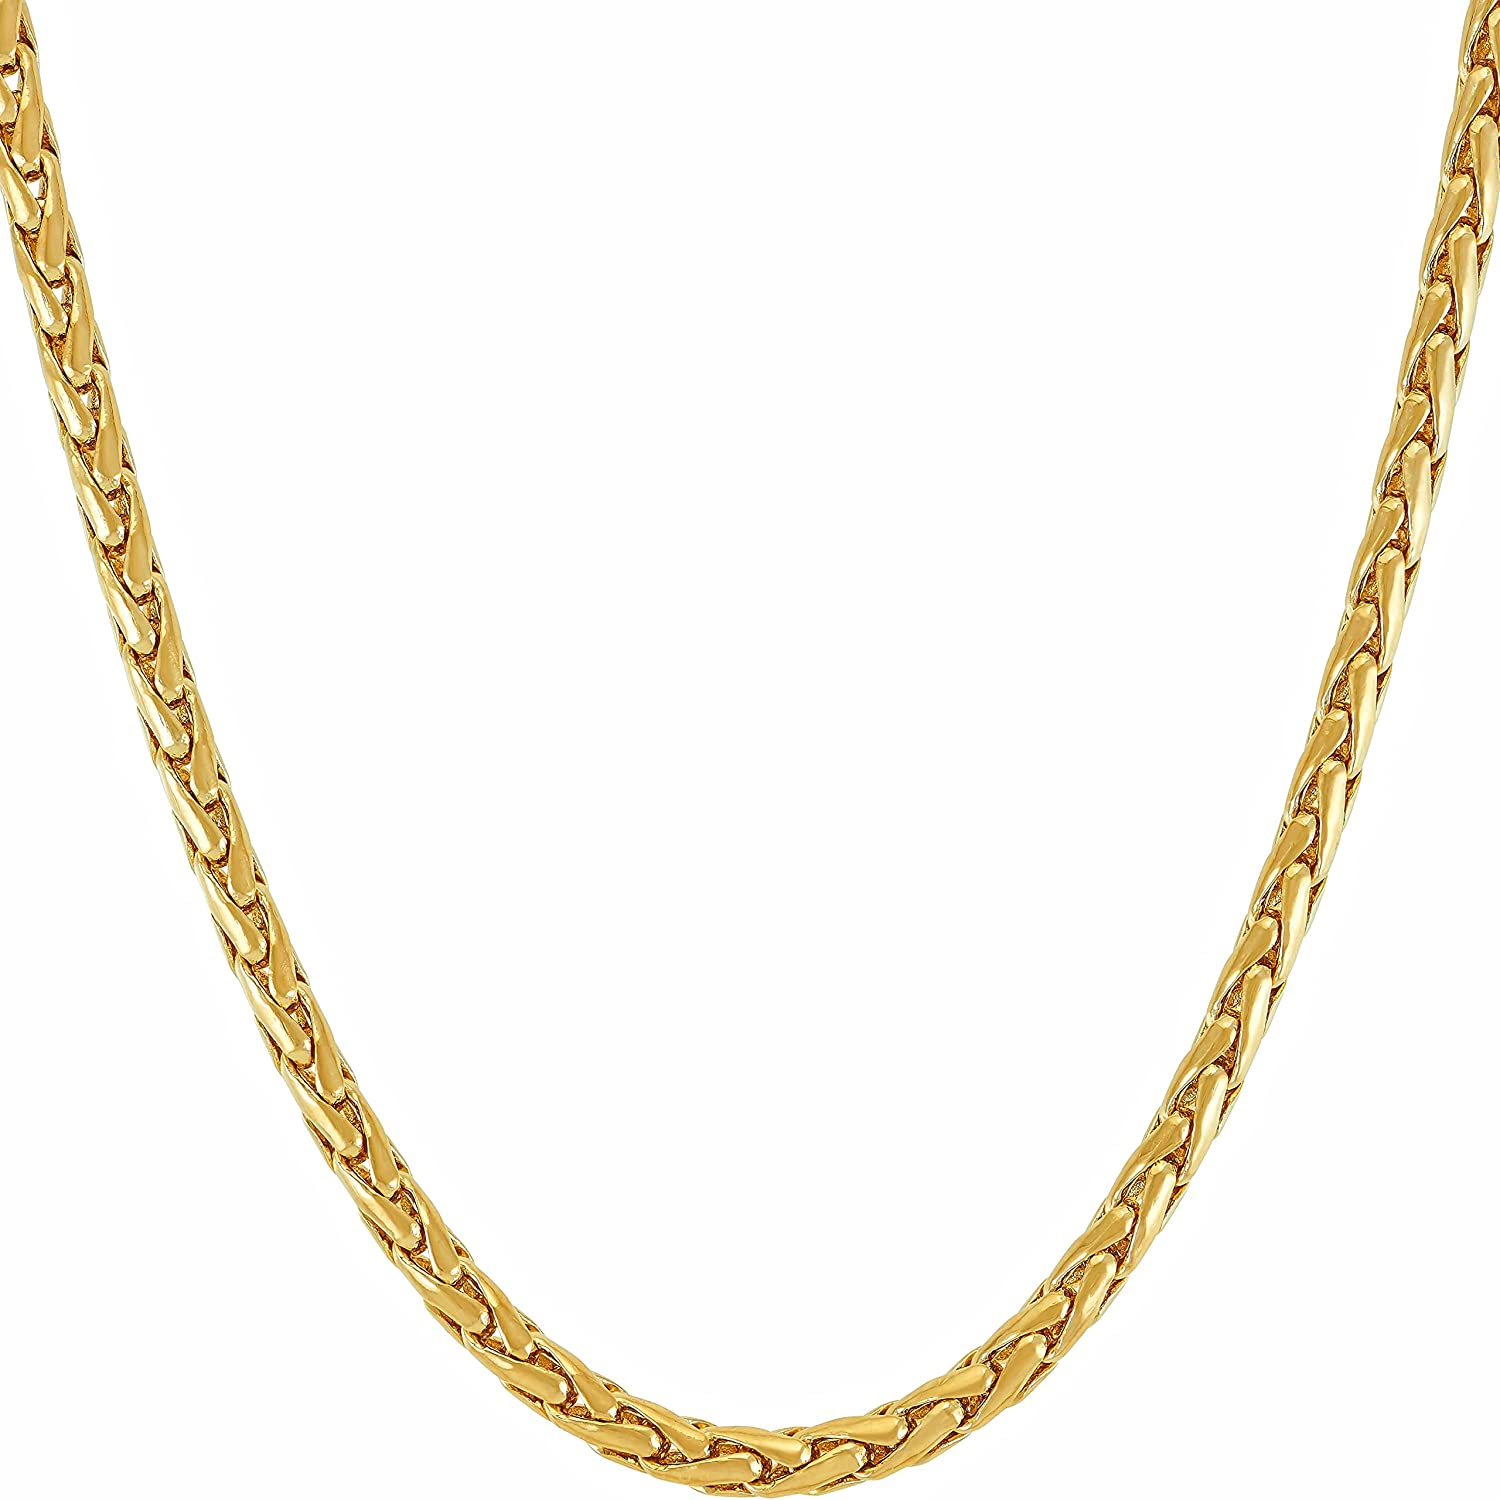 LIFETIME JEWELRY Weave Chain 国内在庫 Necklace for Real 24k 送料無料 新品 Men G Women